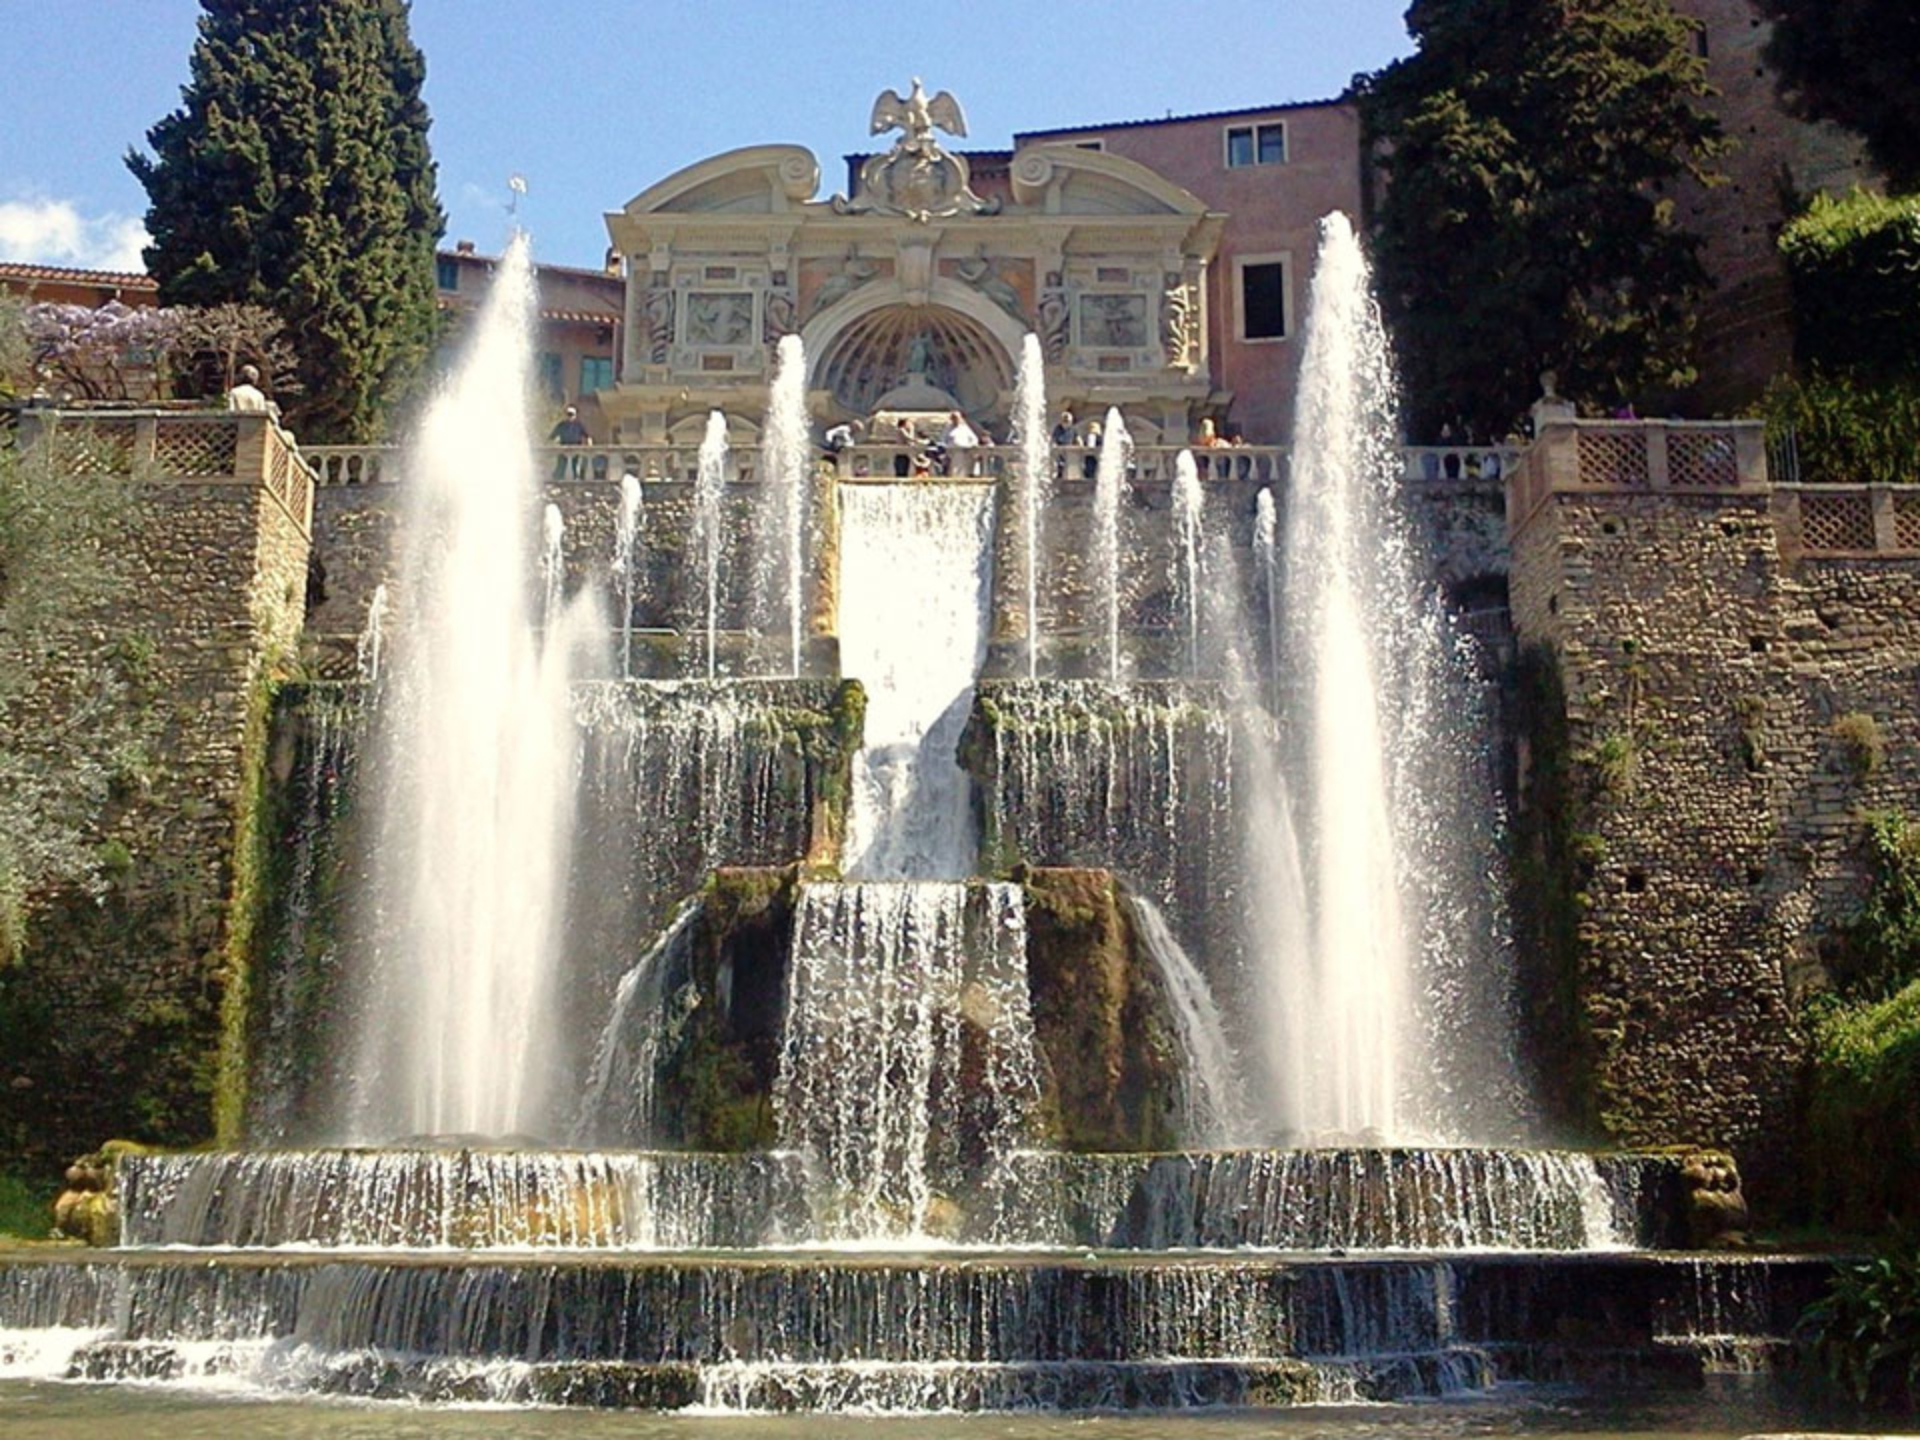 villas-tivoli_Italy-Tour-With-Theresa_02